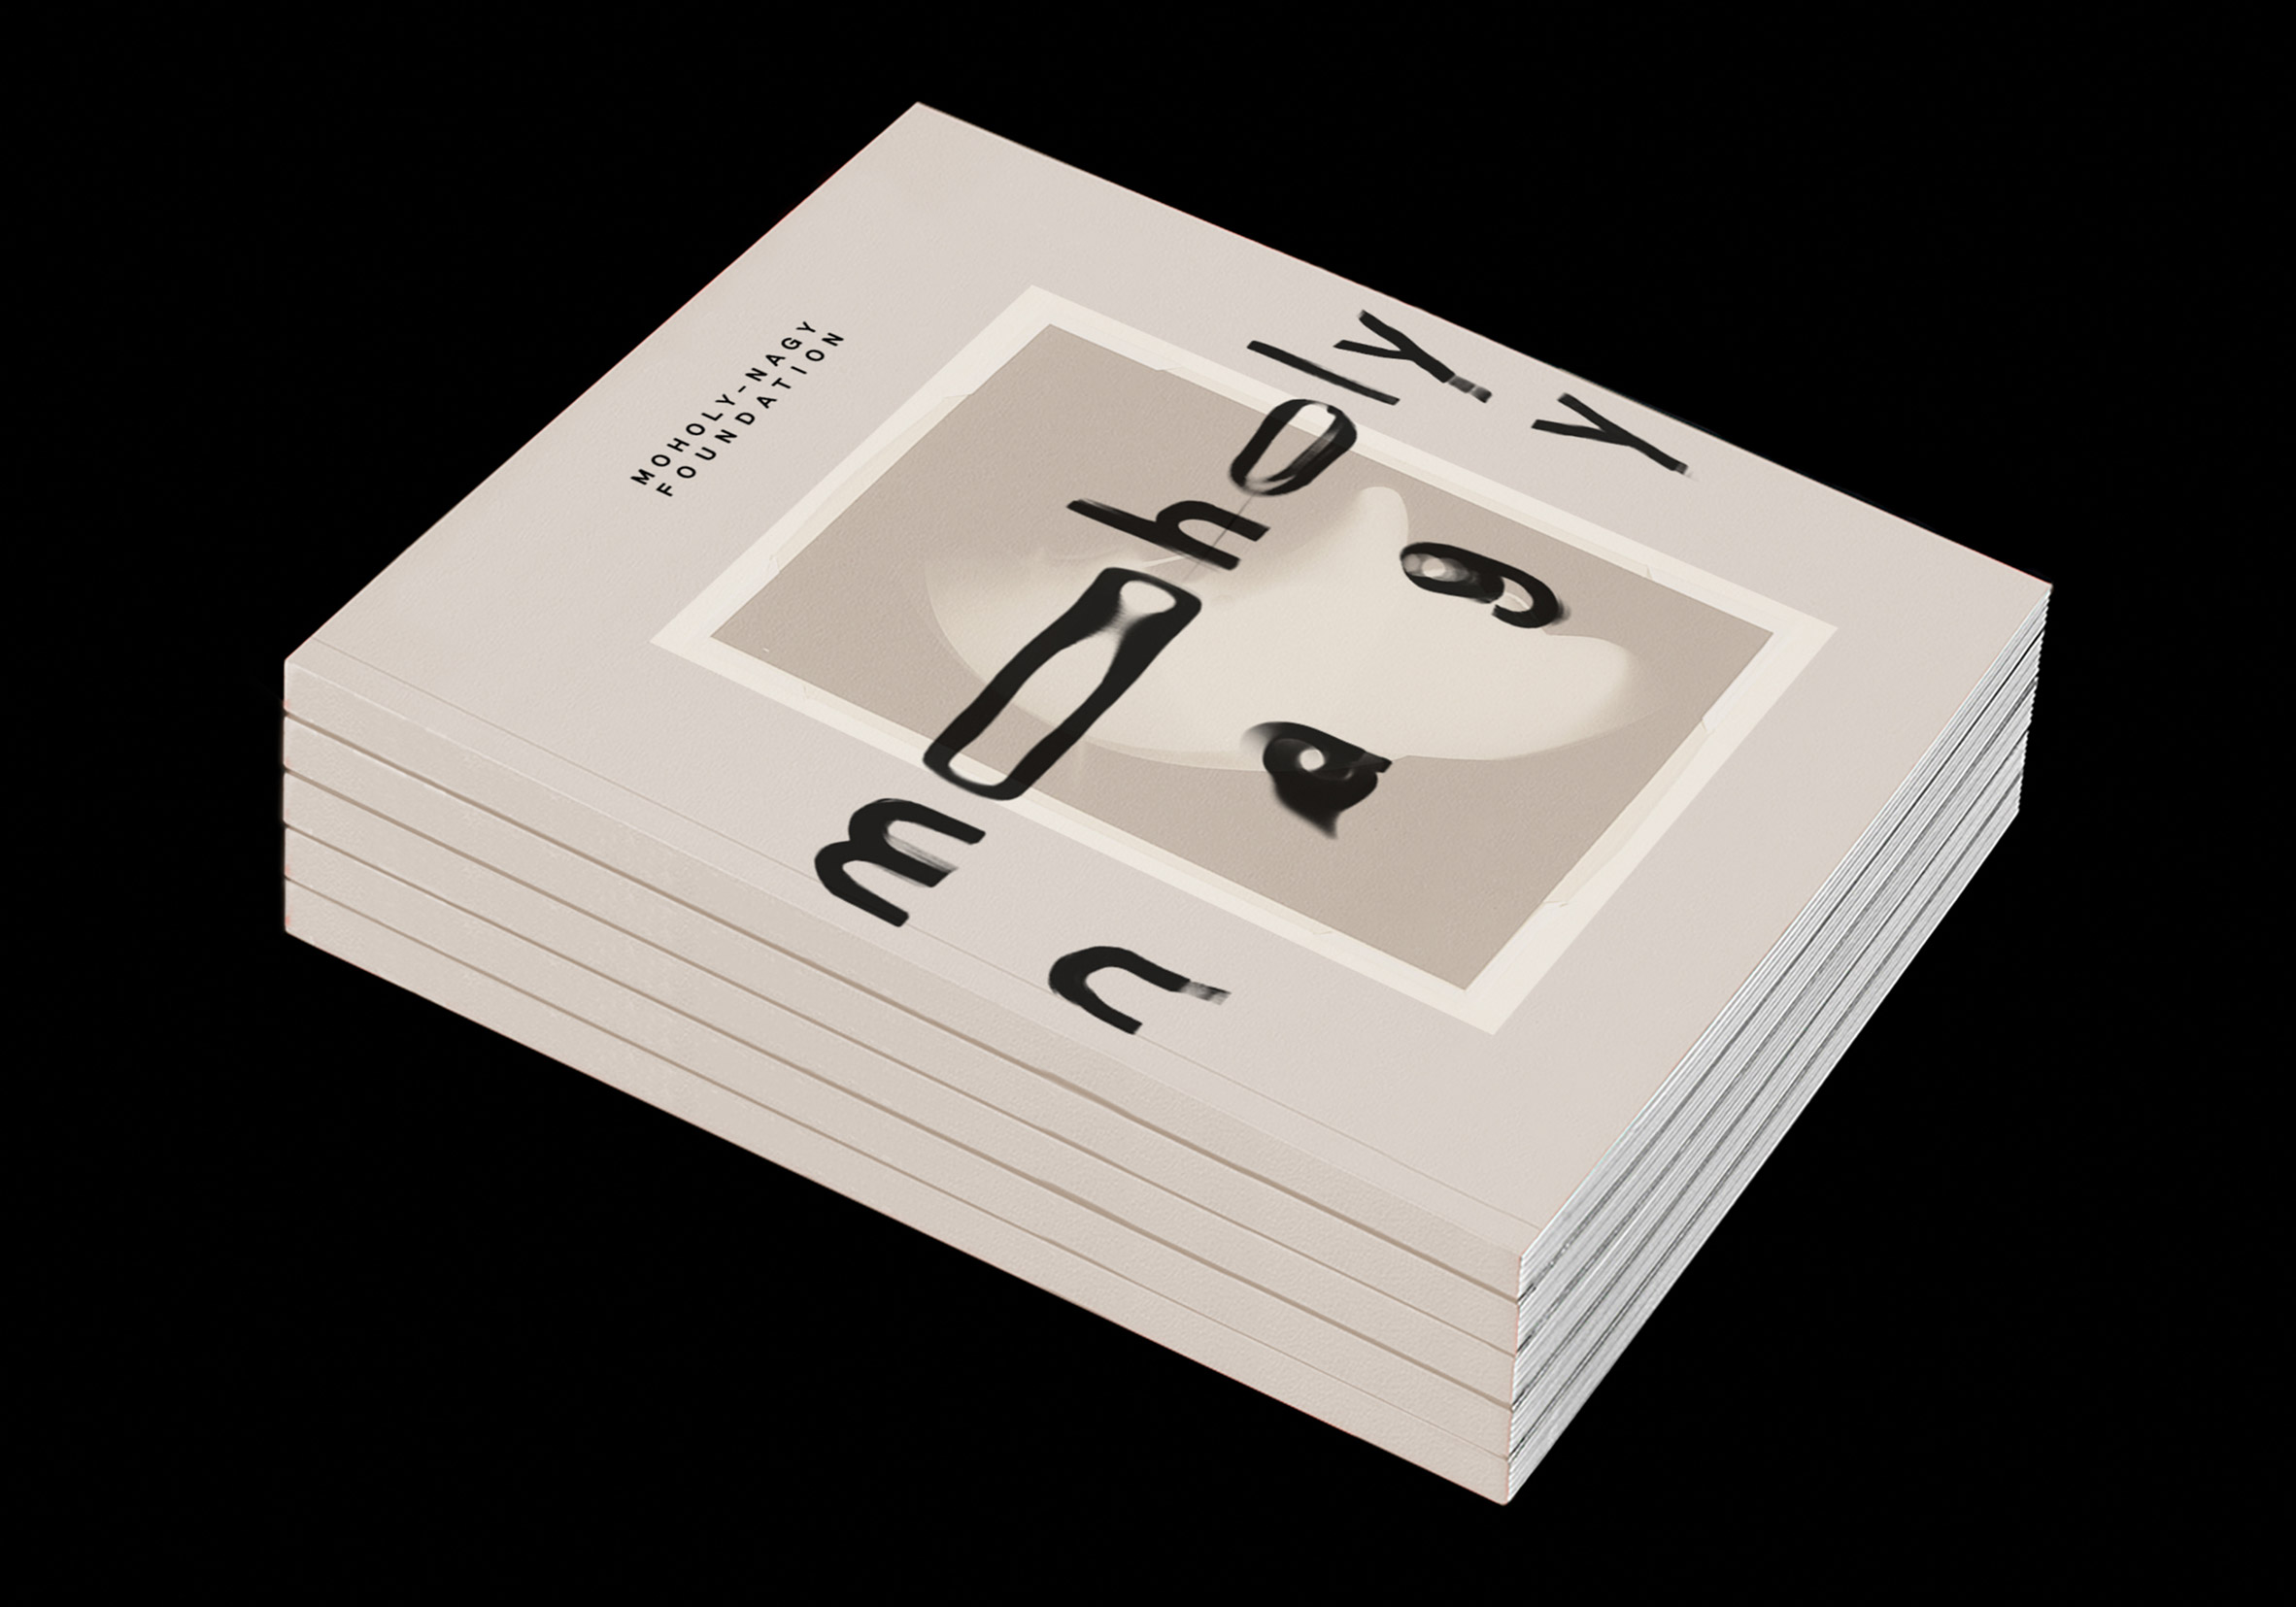 Pentagram designs new visual identity for The Moholy-Nagy Foundation